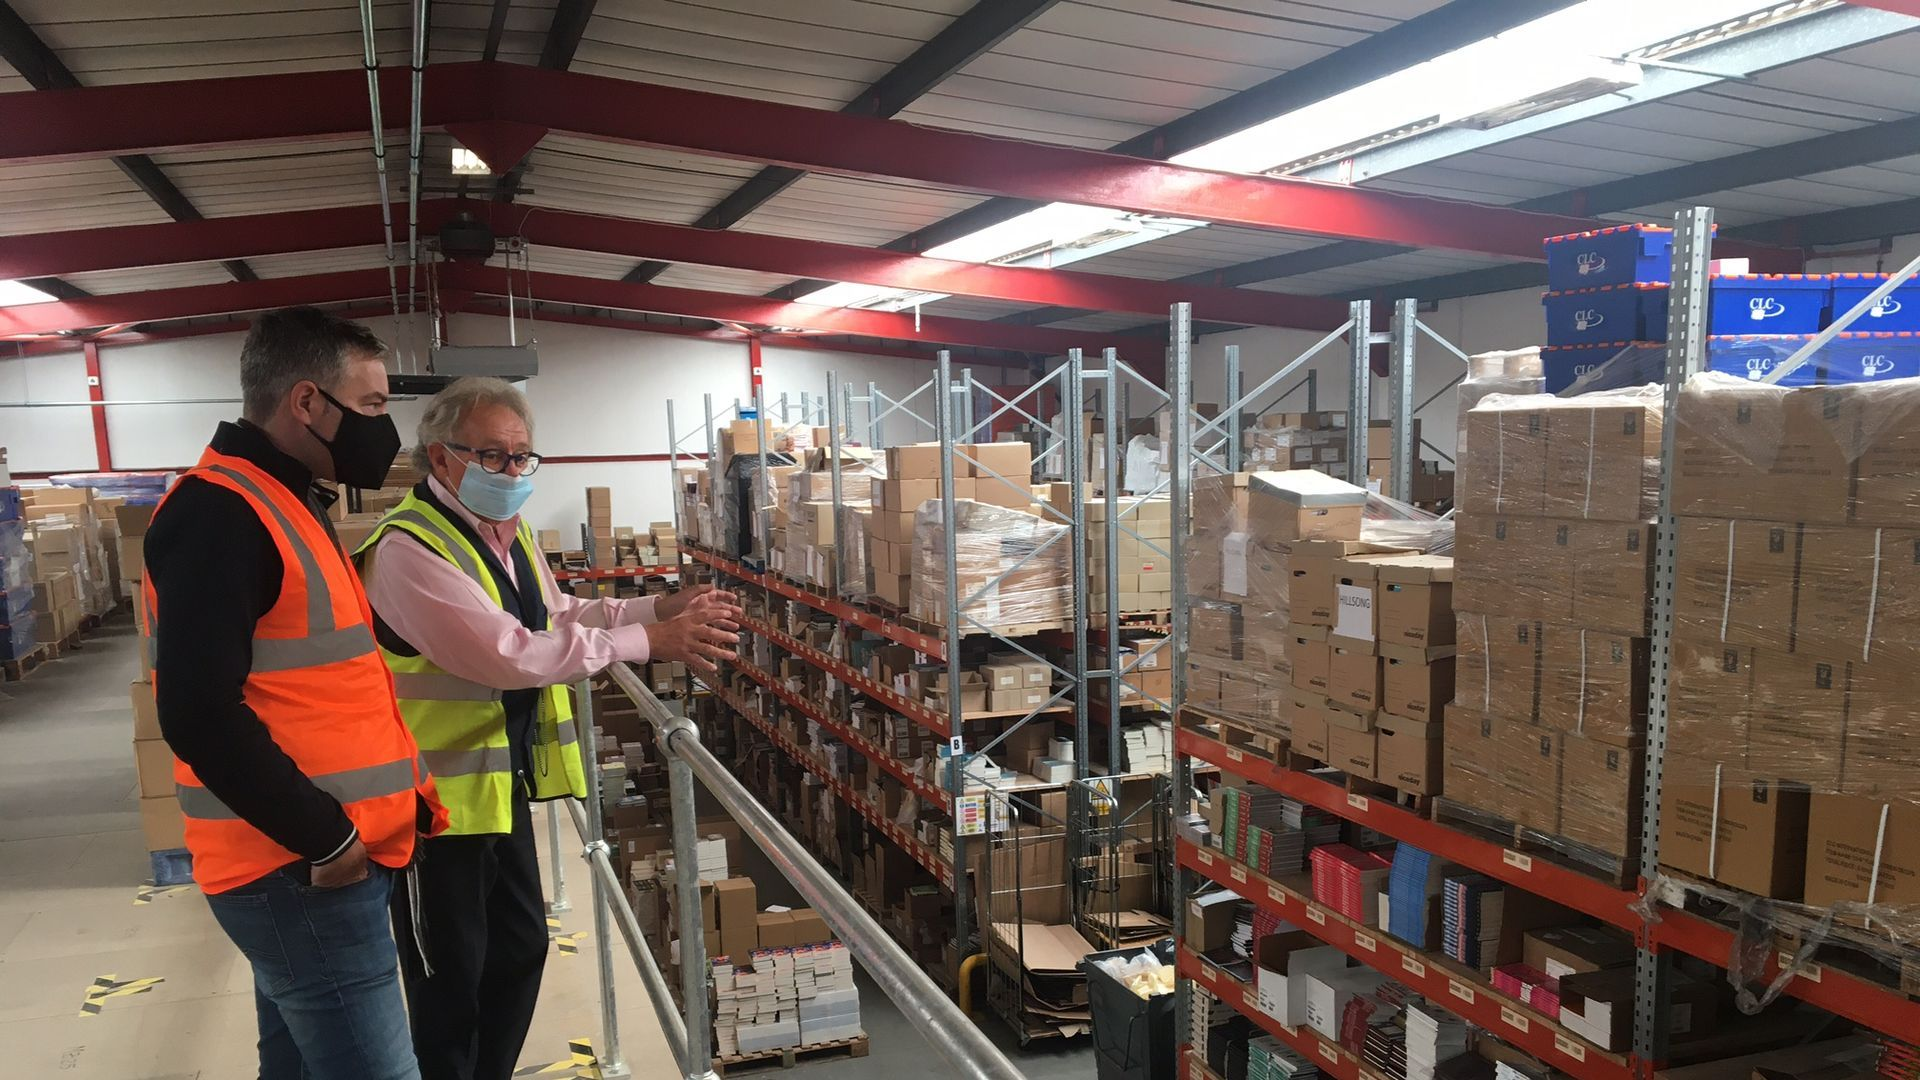 Inside the KCLCT warehouse